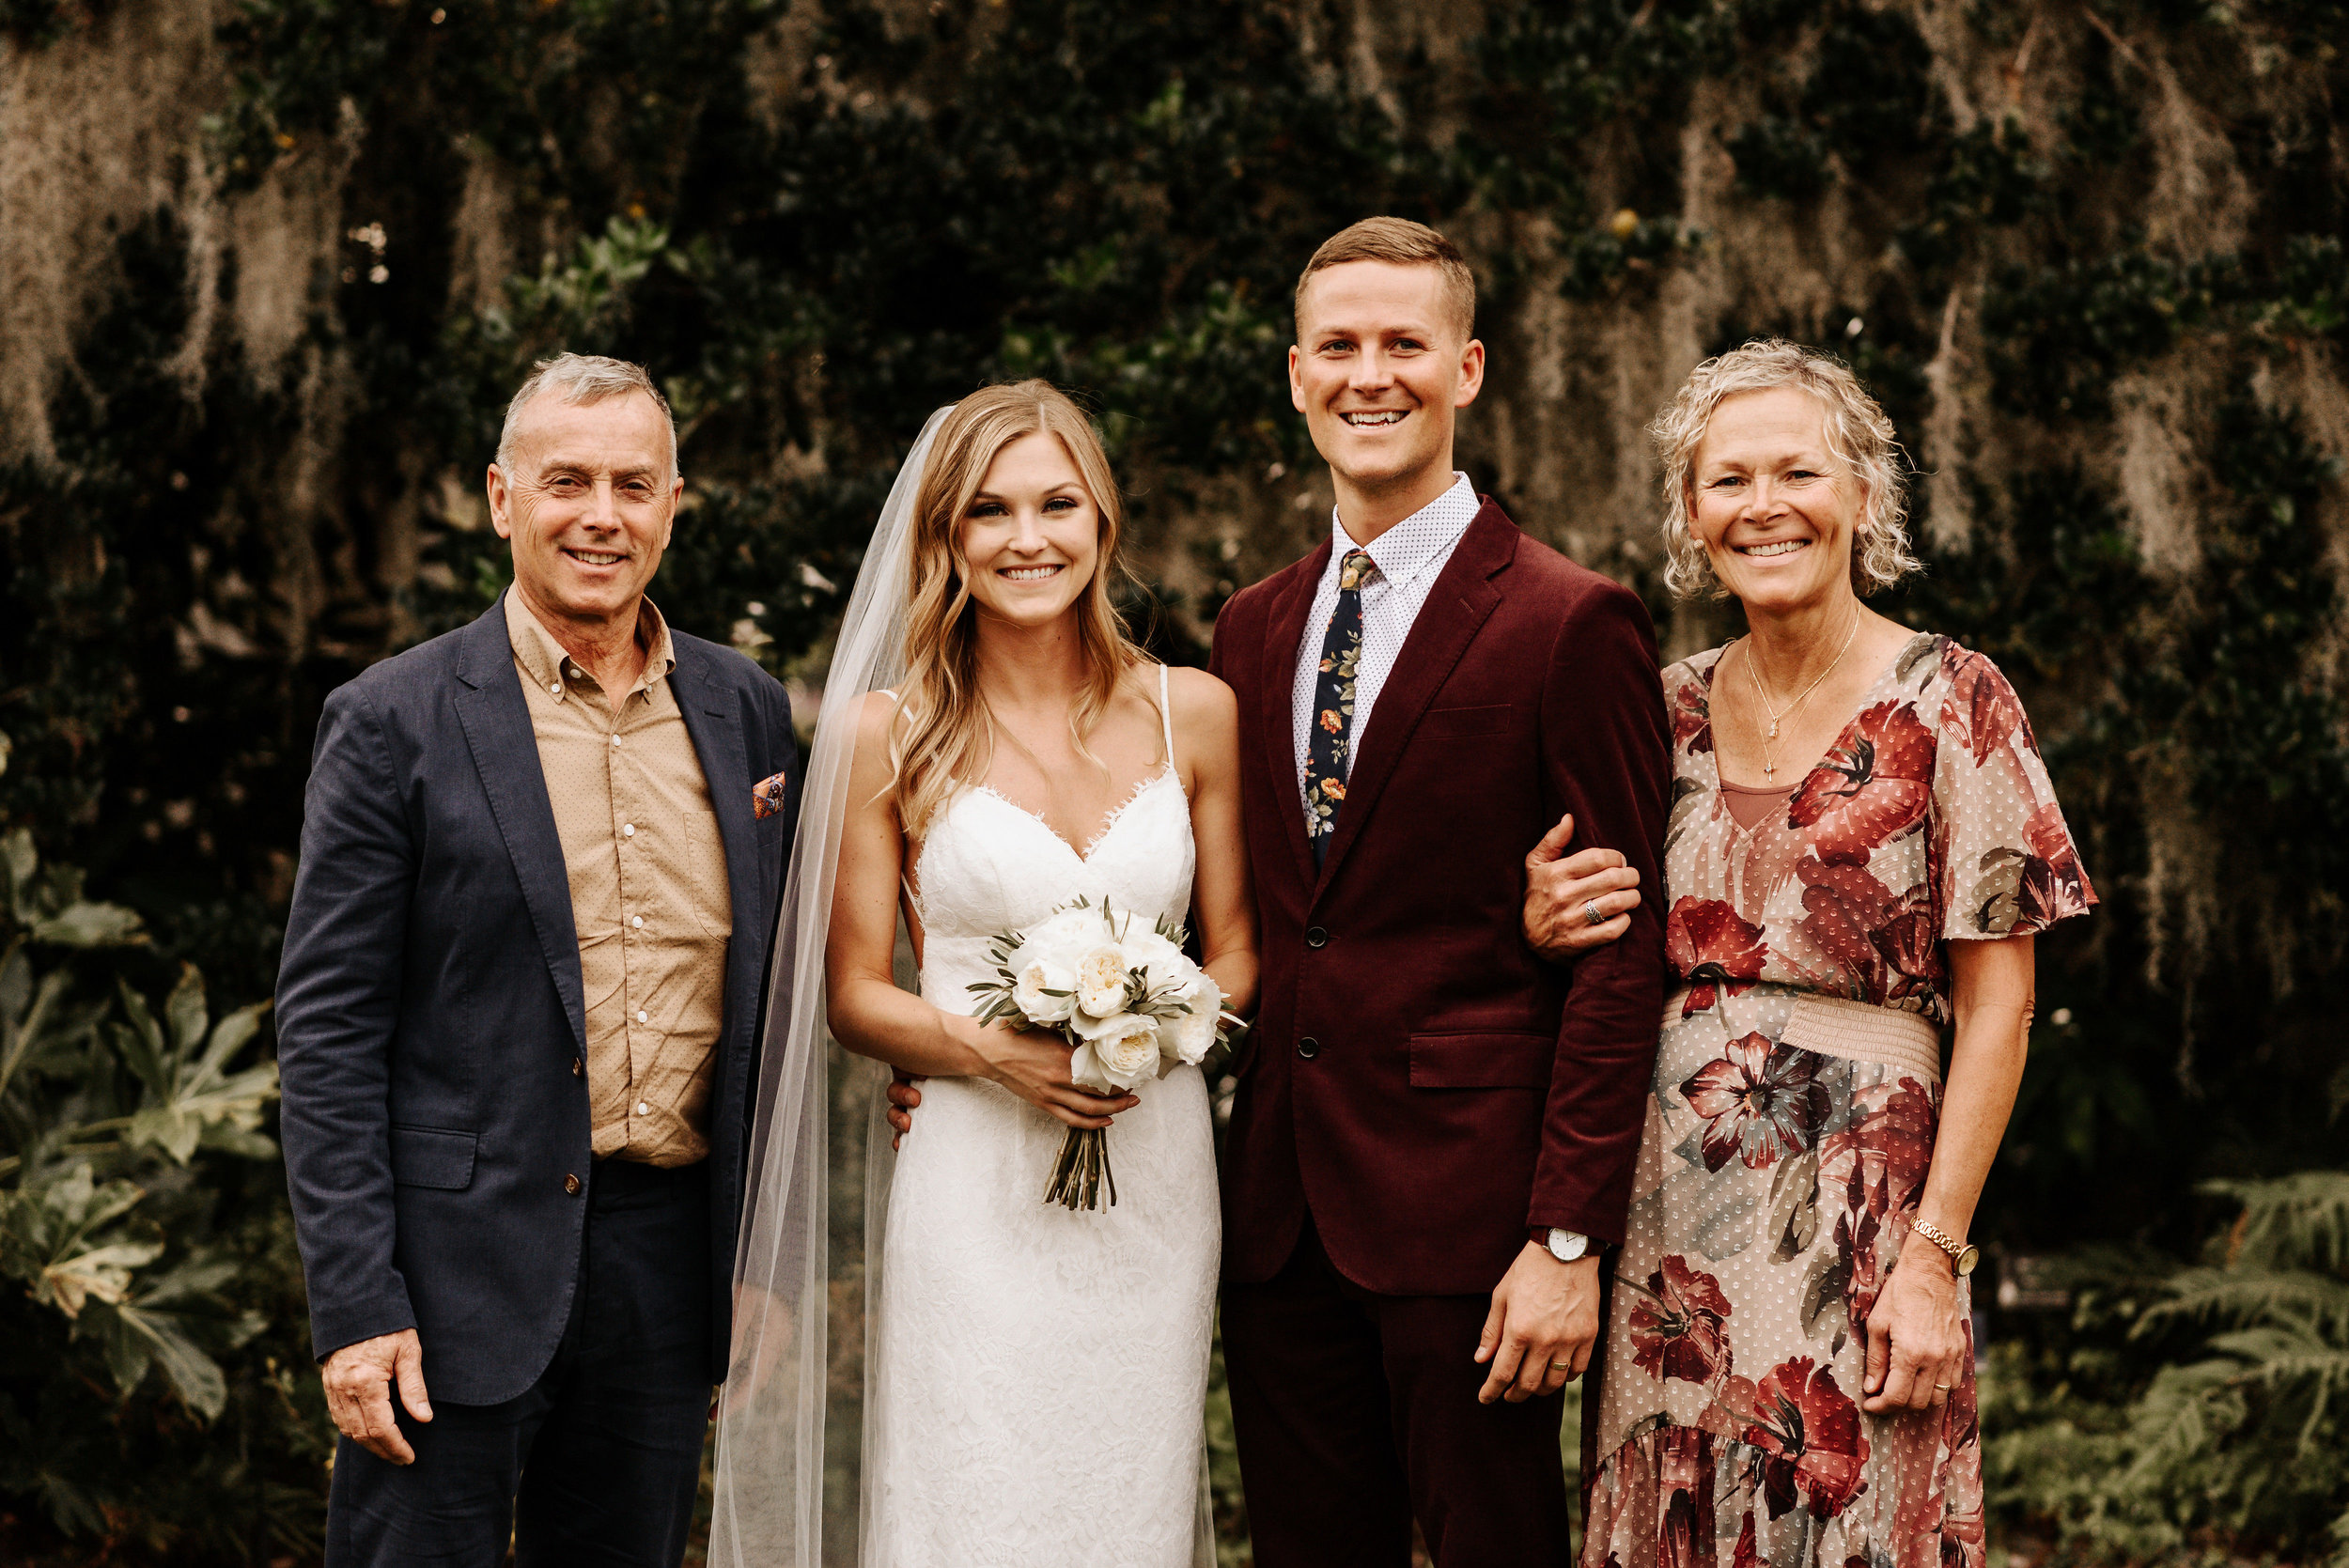 Kourtney_Sean_Savannah_Georgia_Wedding_Wormsloe_Histroic_Site_Coastal_Georgia_Botanical_Gardens_Photography_by_V_7053.jpg